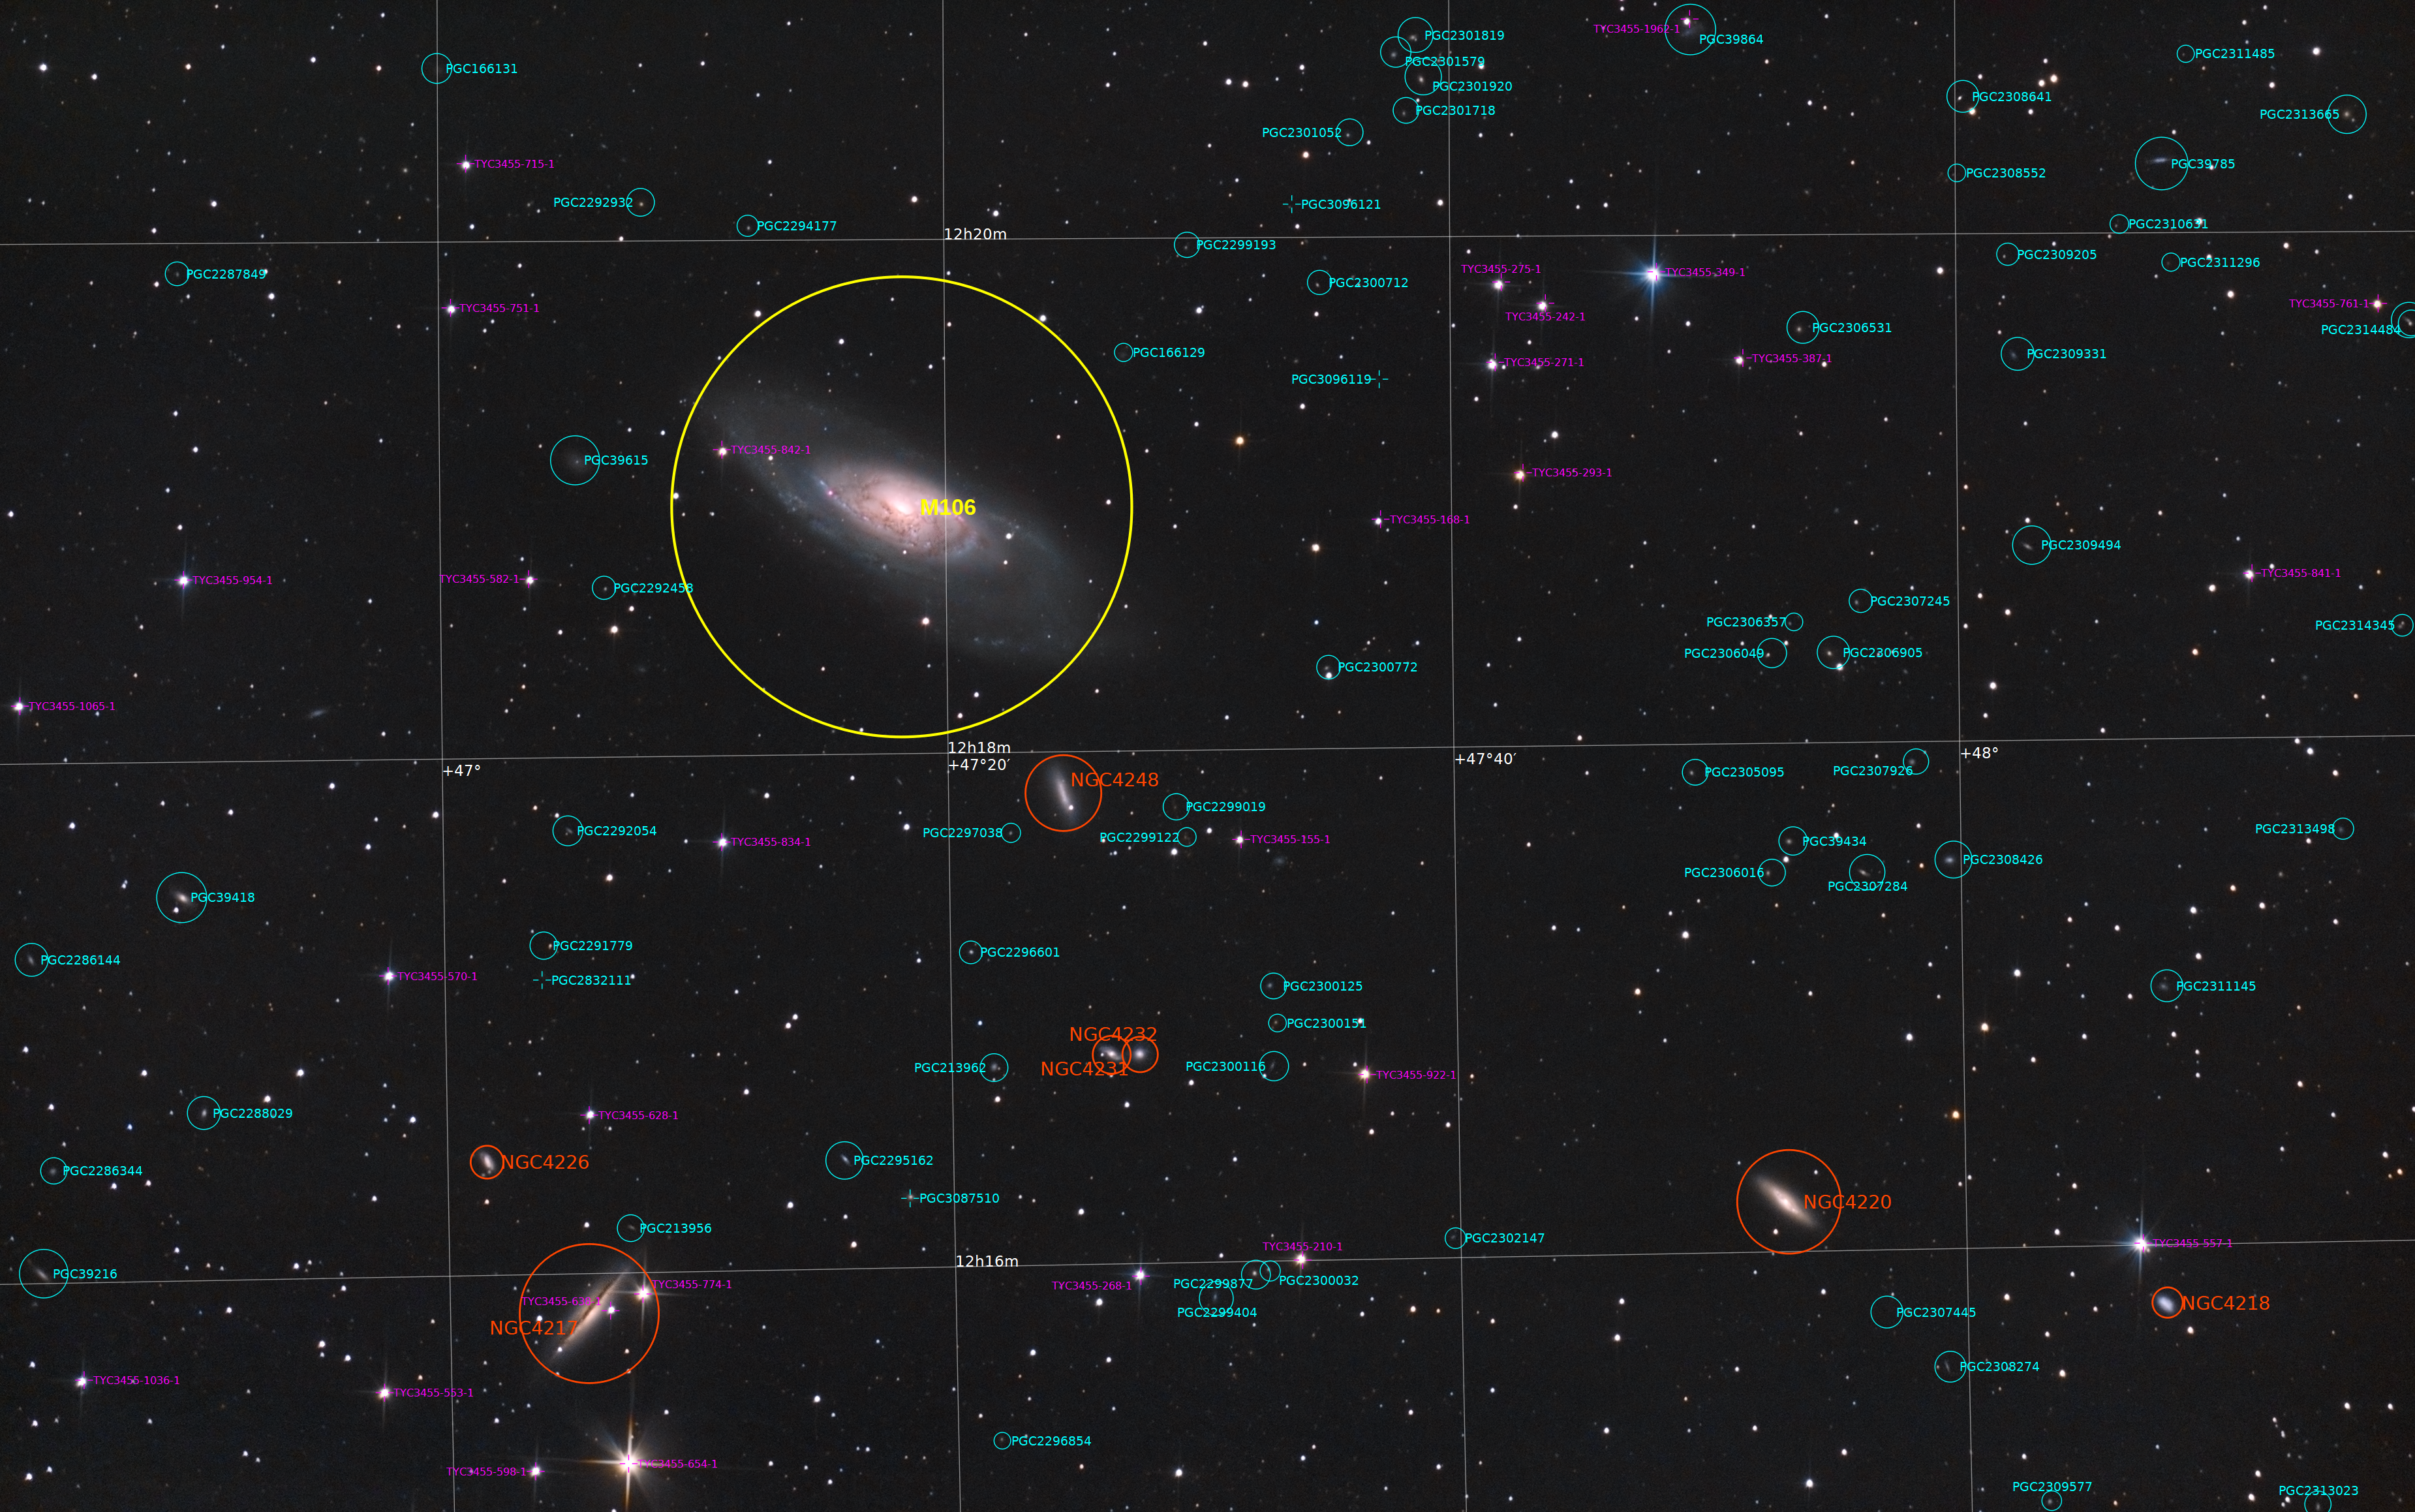 M106_19_20_05_2020_V2_Annotated.png.2ea9